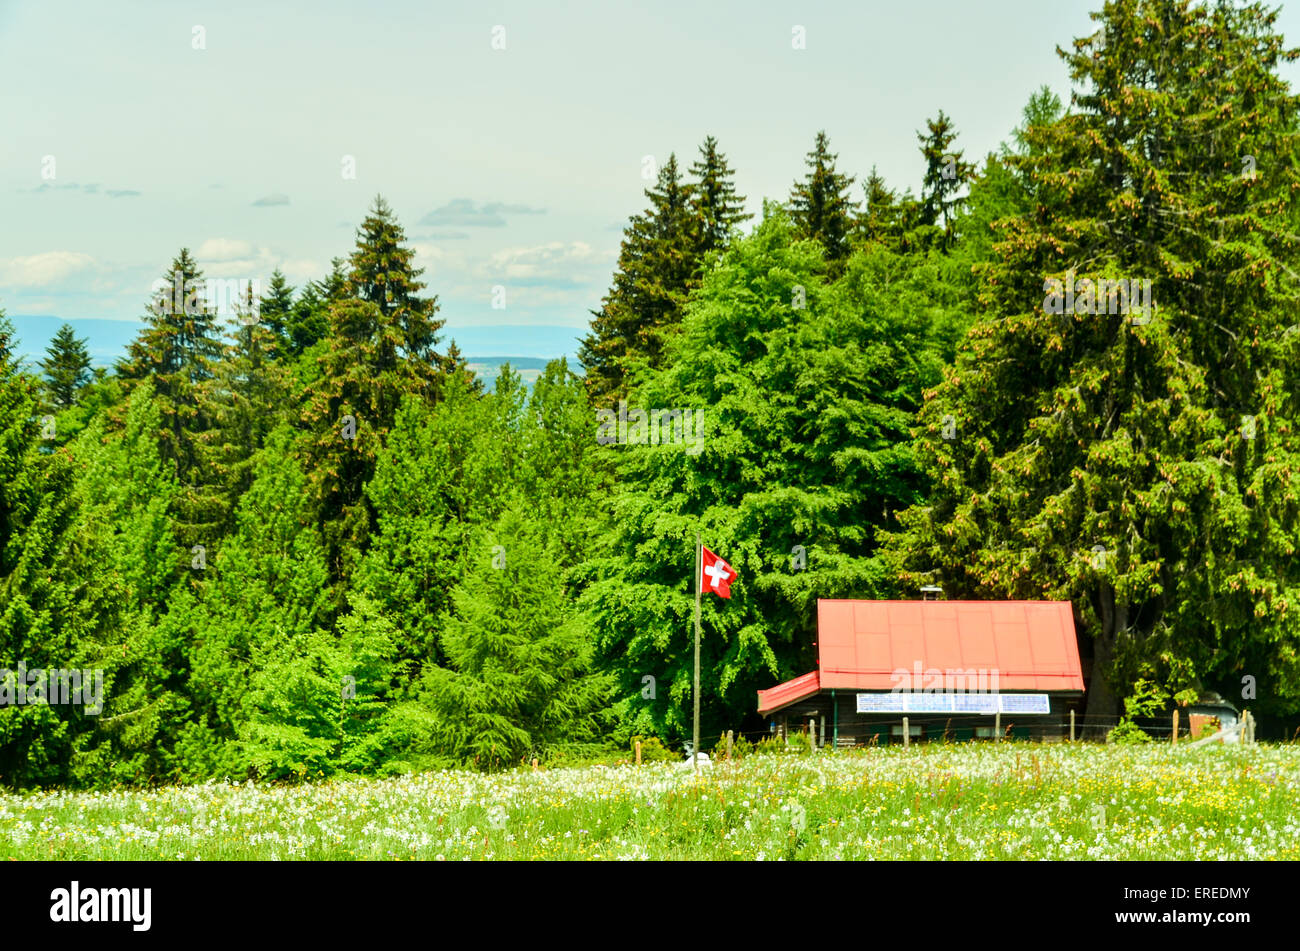 Swiss flag flying near a chalet in the Swiss mountains in summer - Stock Image